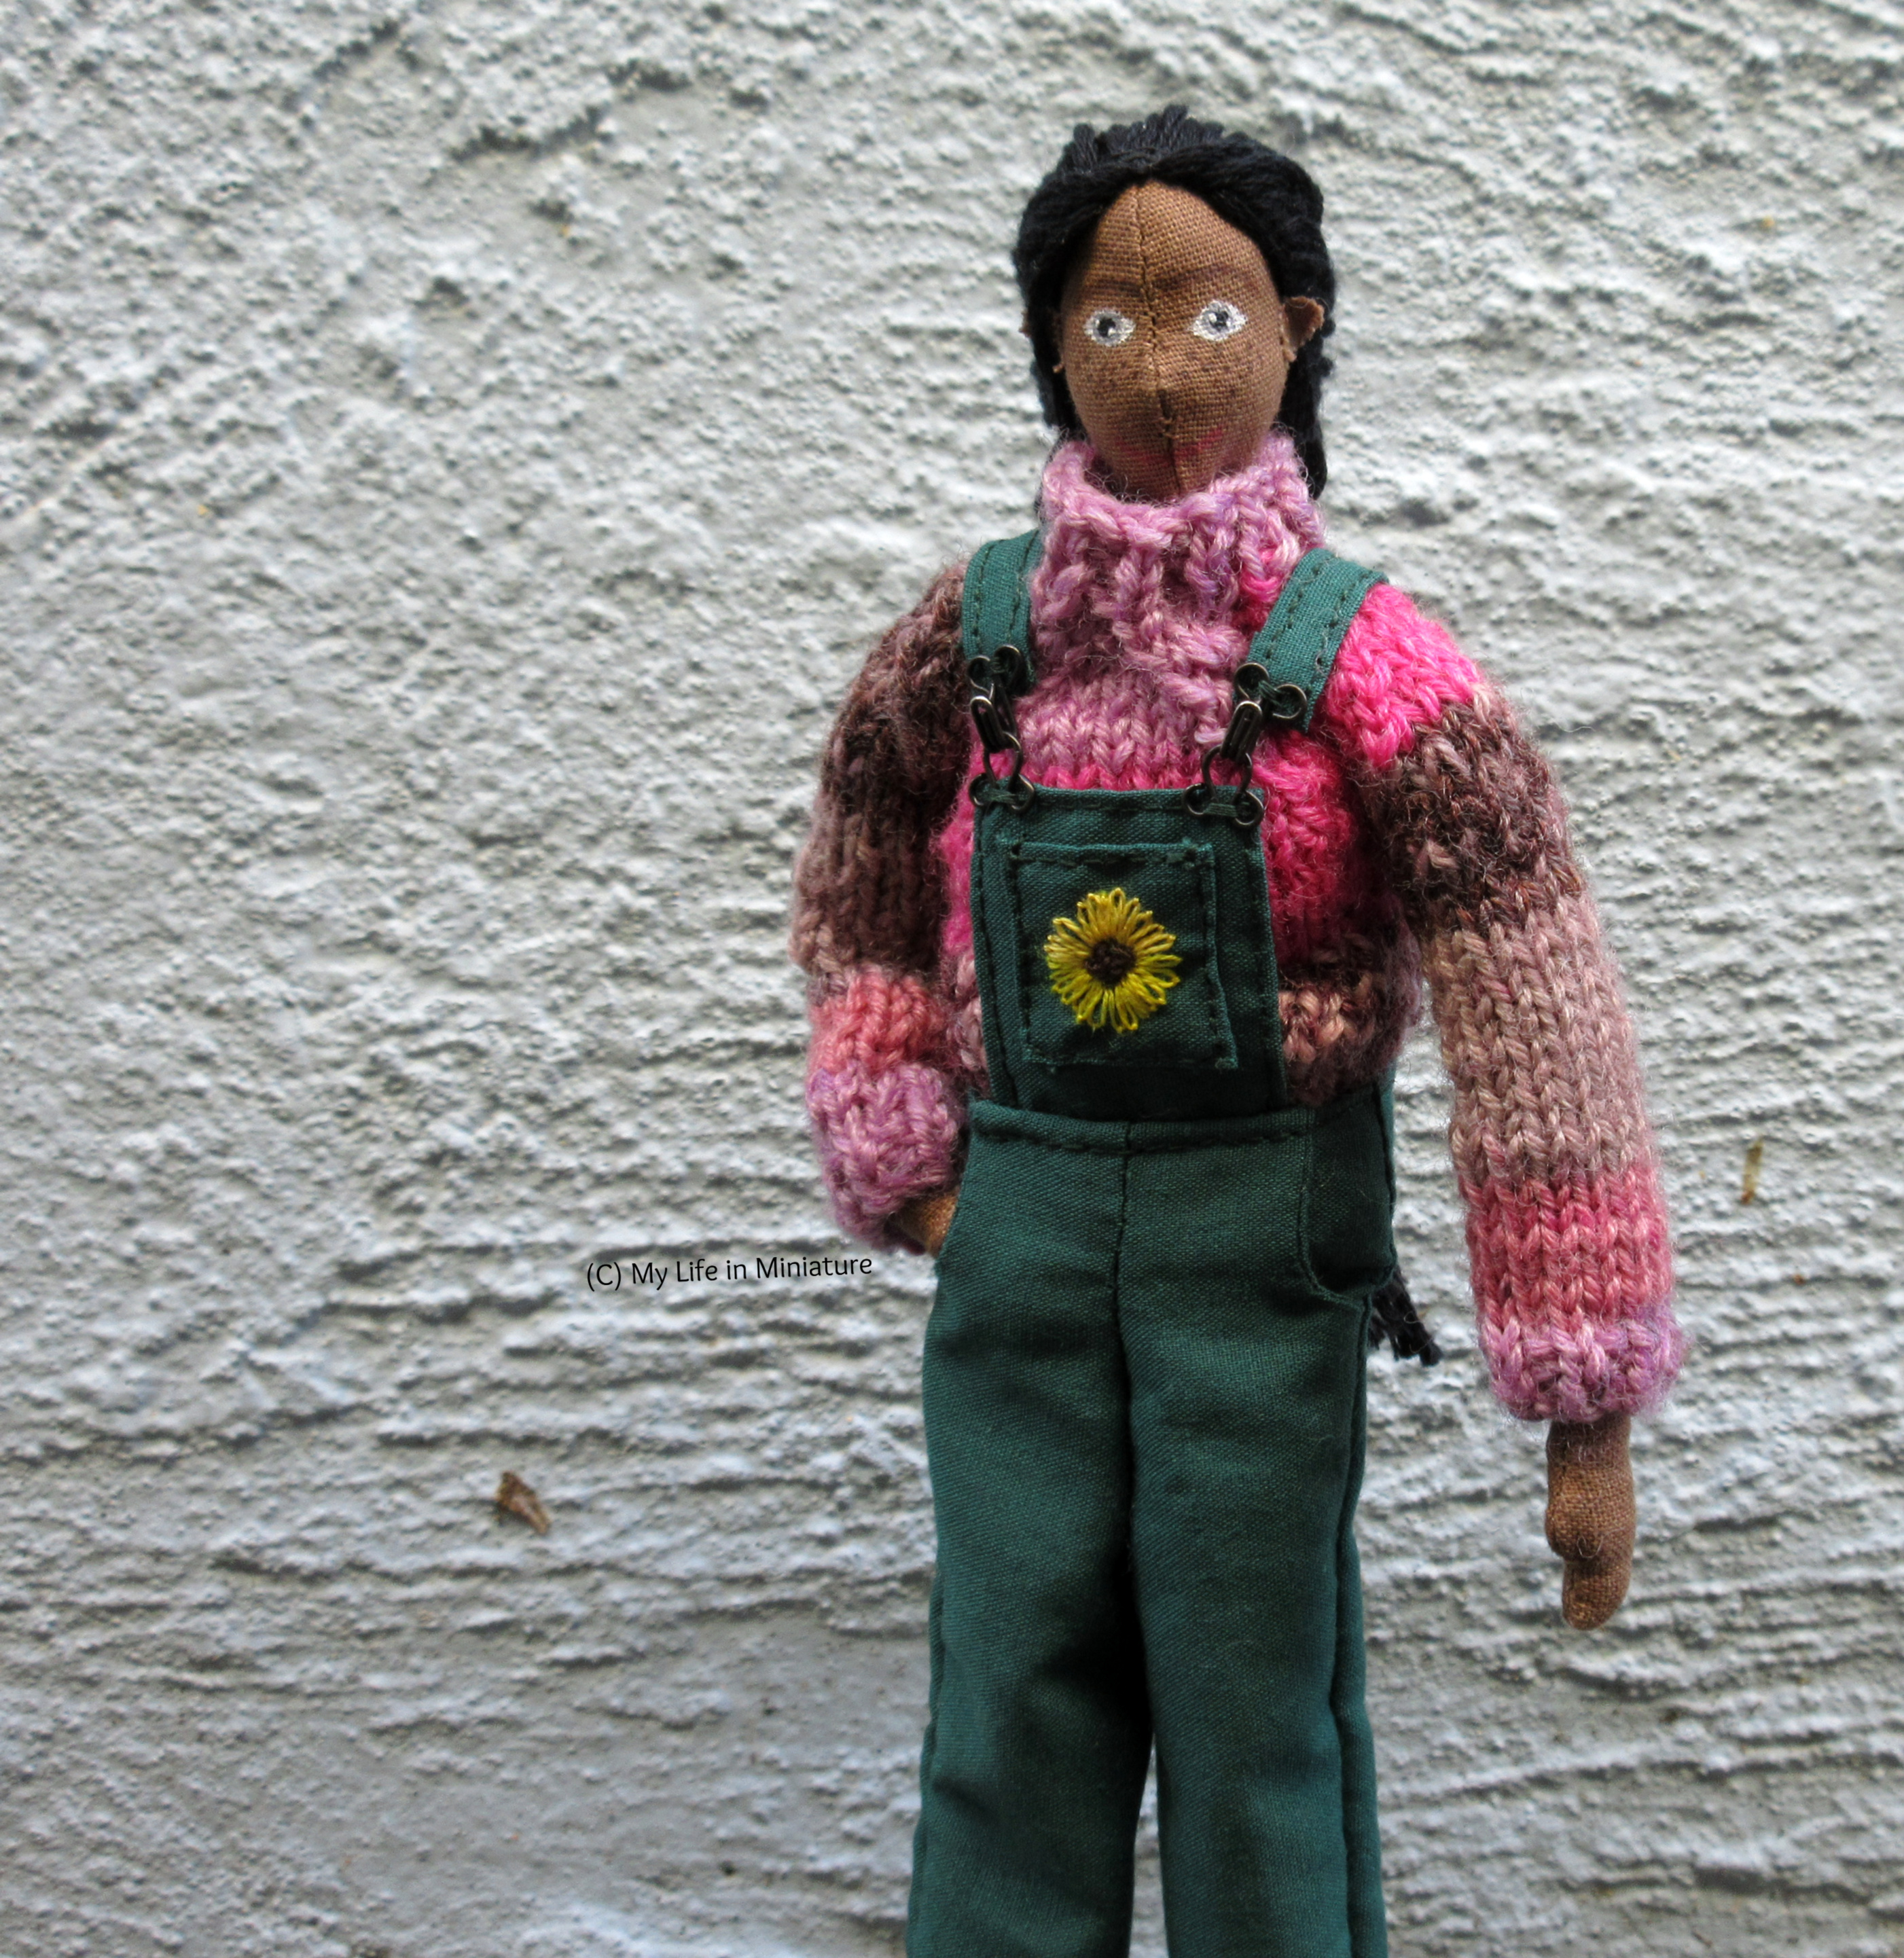 Petra wears the pink jumper under her green dungarees, one hand in her pocket. She's outside, against a pale blue textured wall, looking at the camera.